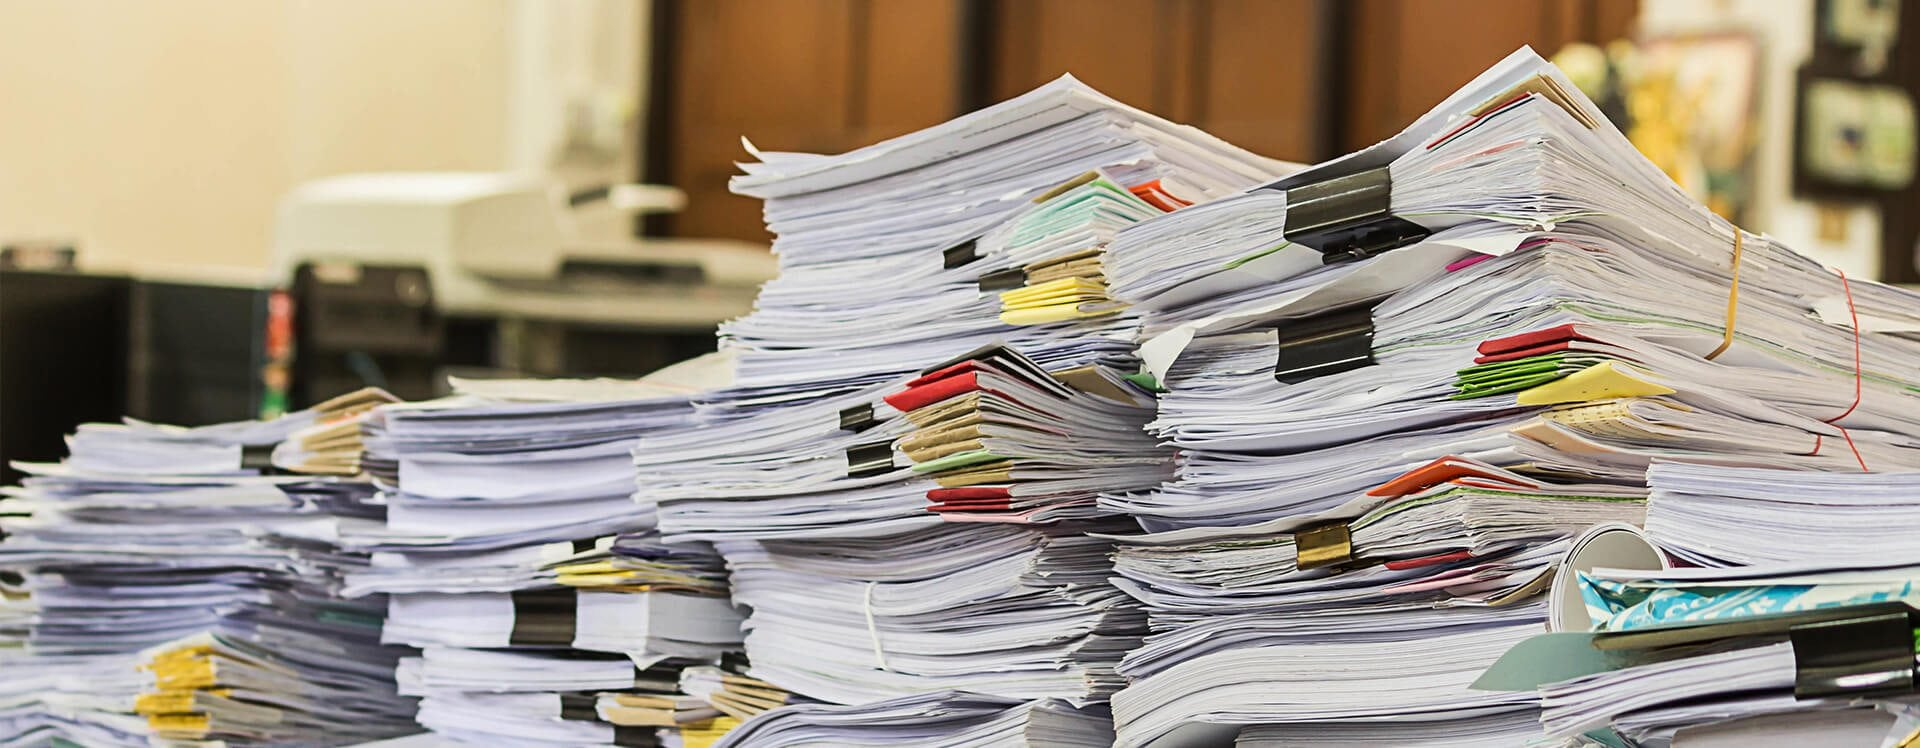 Stack of papers piled over each other